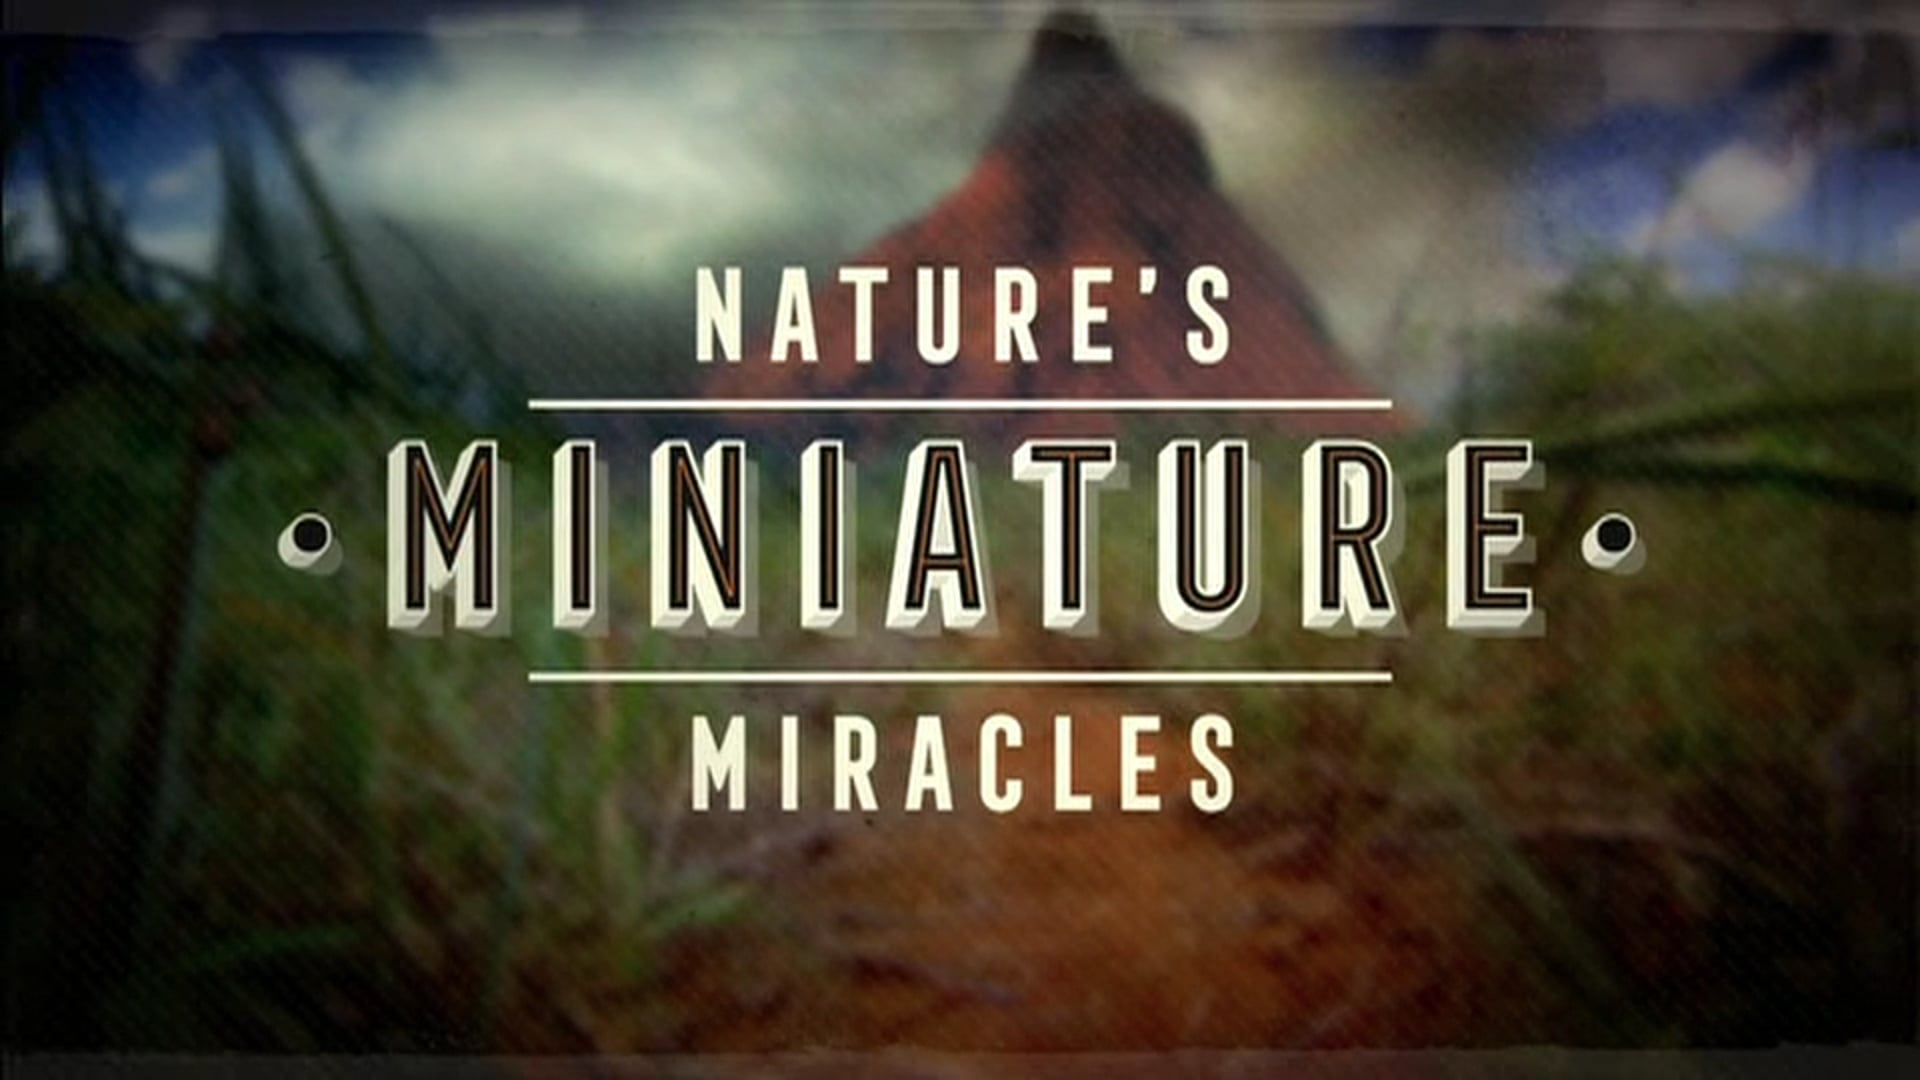 Natural World: Nature's Miniature Miracles. Pre and Post Title